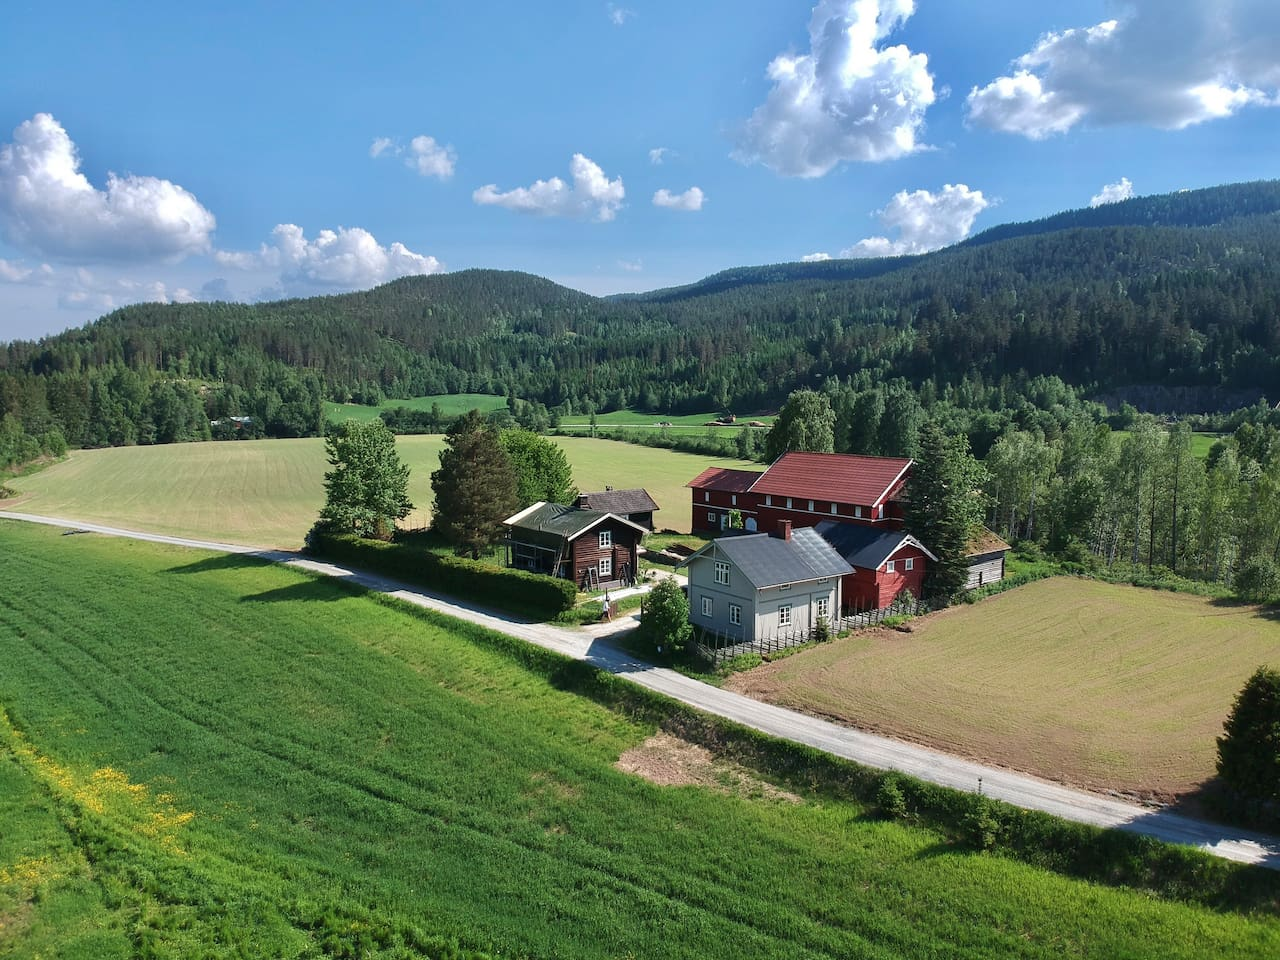 Wesseltunet is a historical farm in Sigdal, only an hour from Oslo. The perfect base for those who would visit Blaafarveværket or just enjoy the fresh air, the peacefulness and the beautiful surrounding nature.